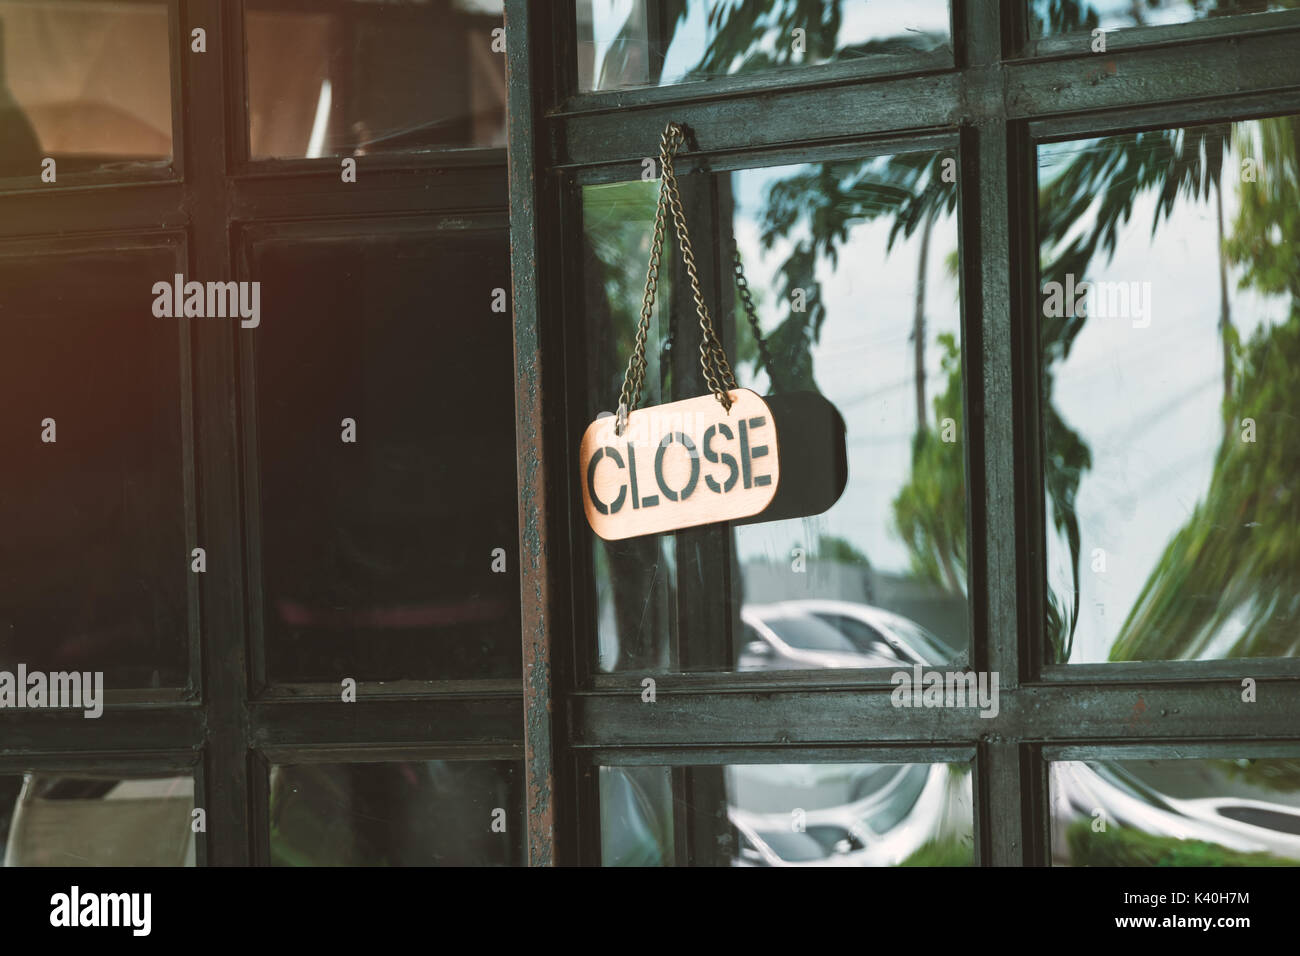 close sign in a shop door concept for The store closes - Stock Image